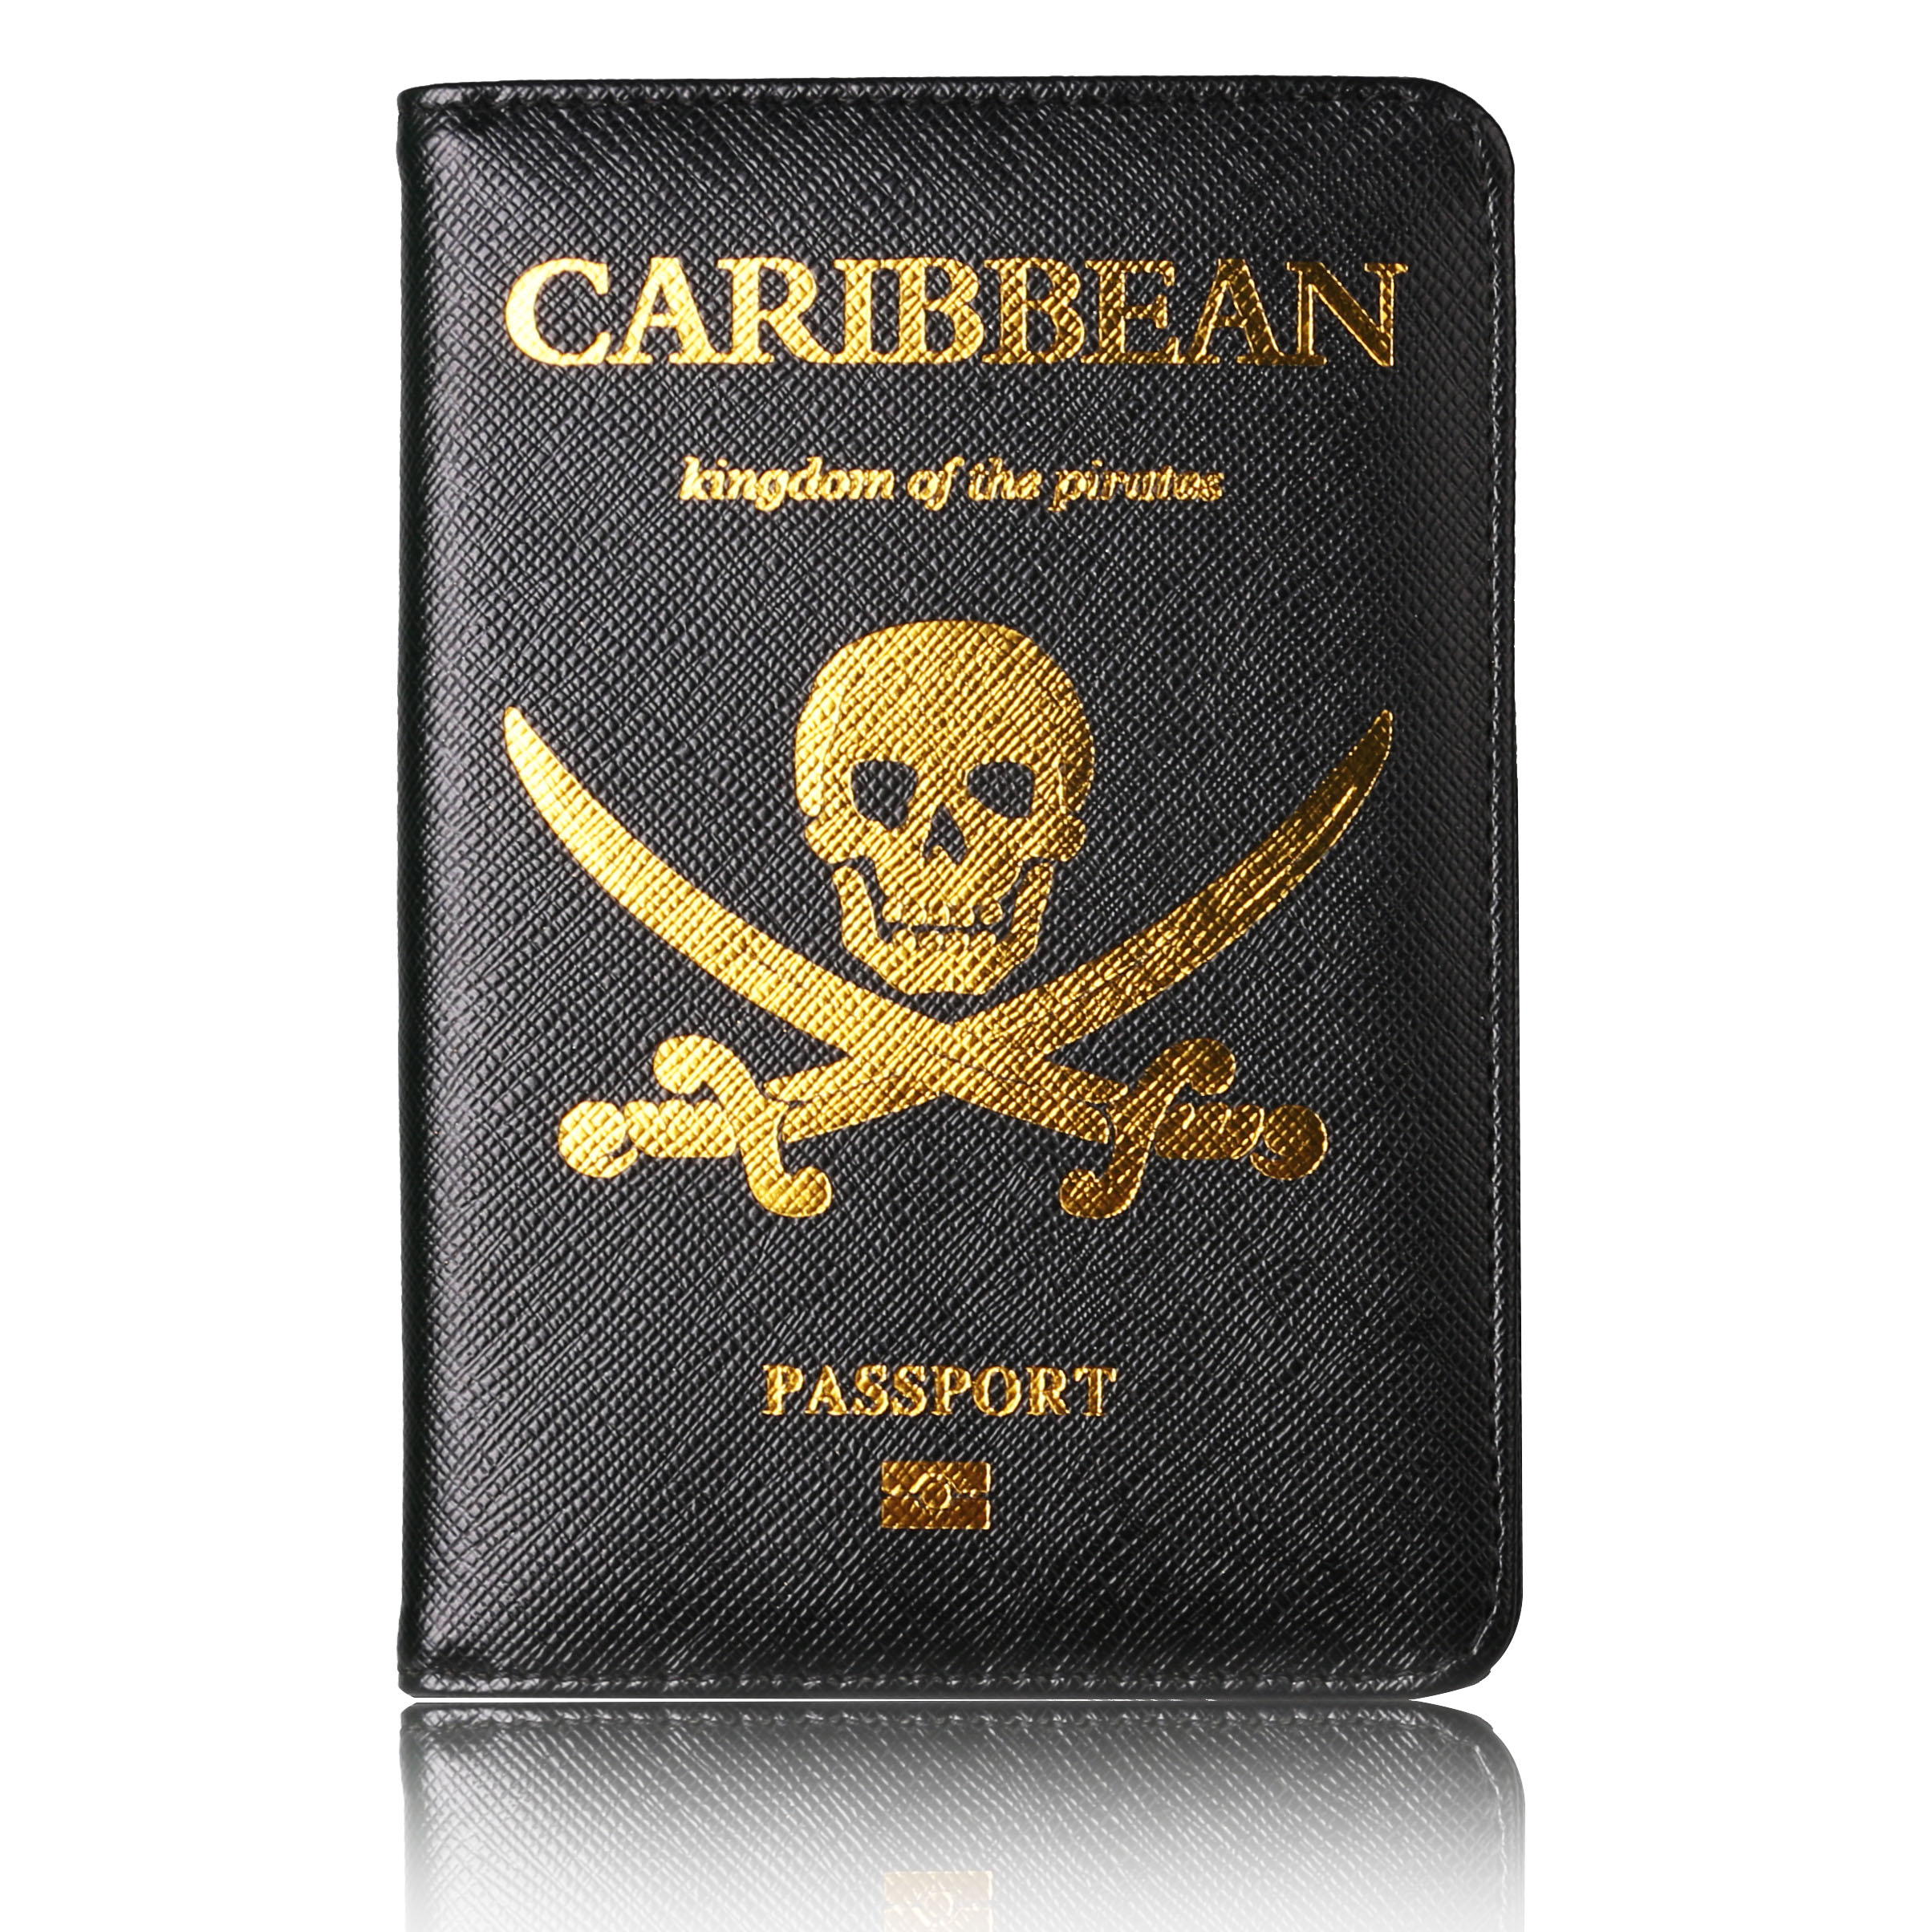 TRASSORY Kingdom Pirates of the Caribbean Leather RFID Blocking <font><b>Passport</b></font> Cover with Card Case and Ticket Holder image